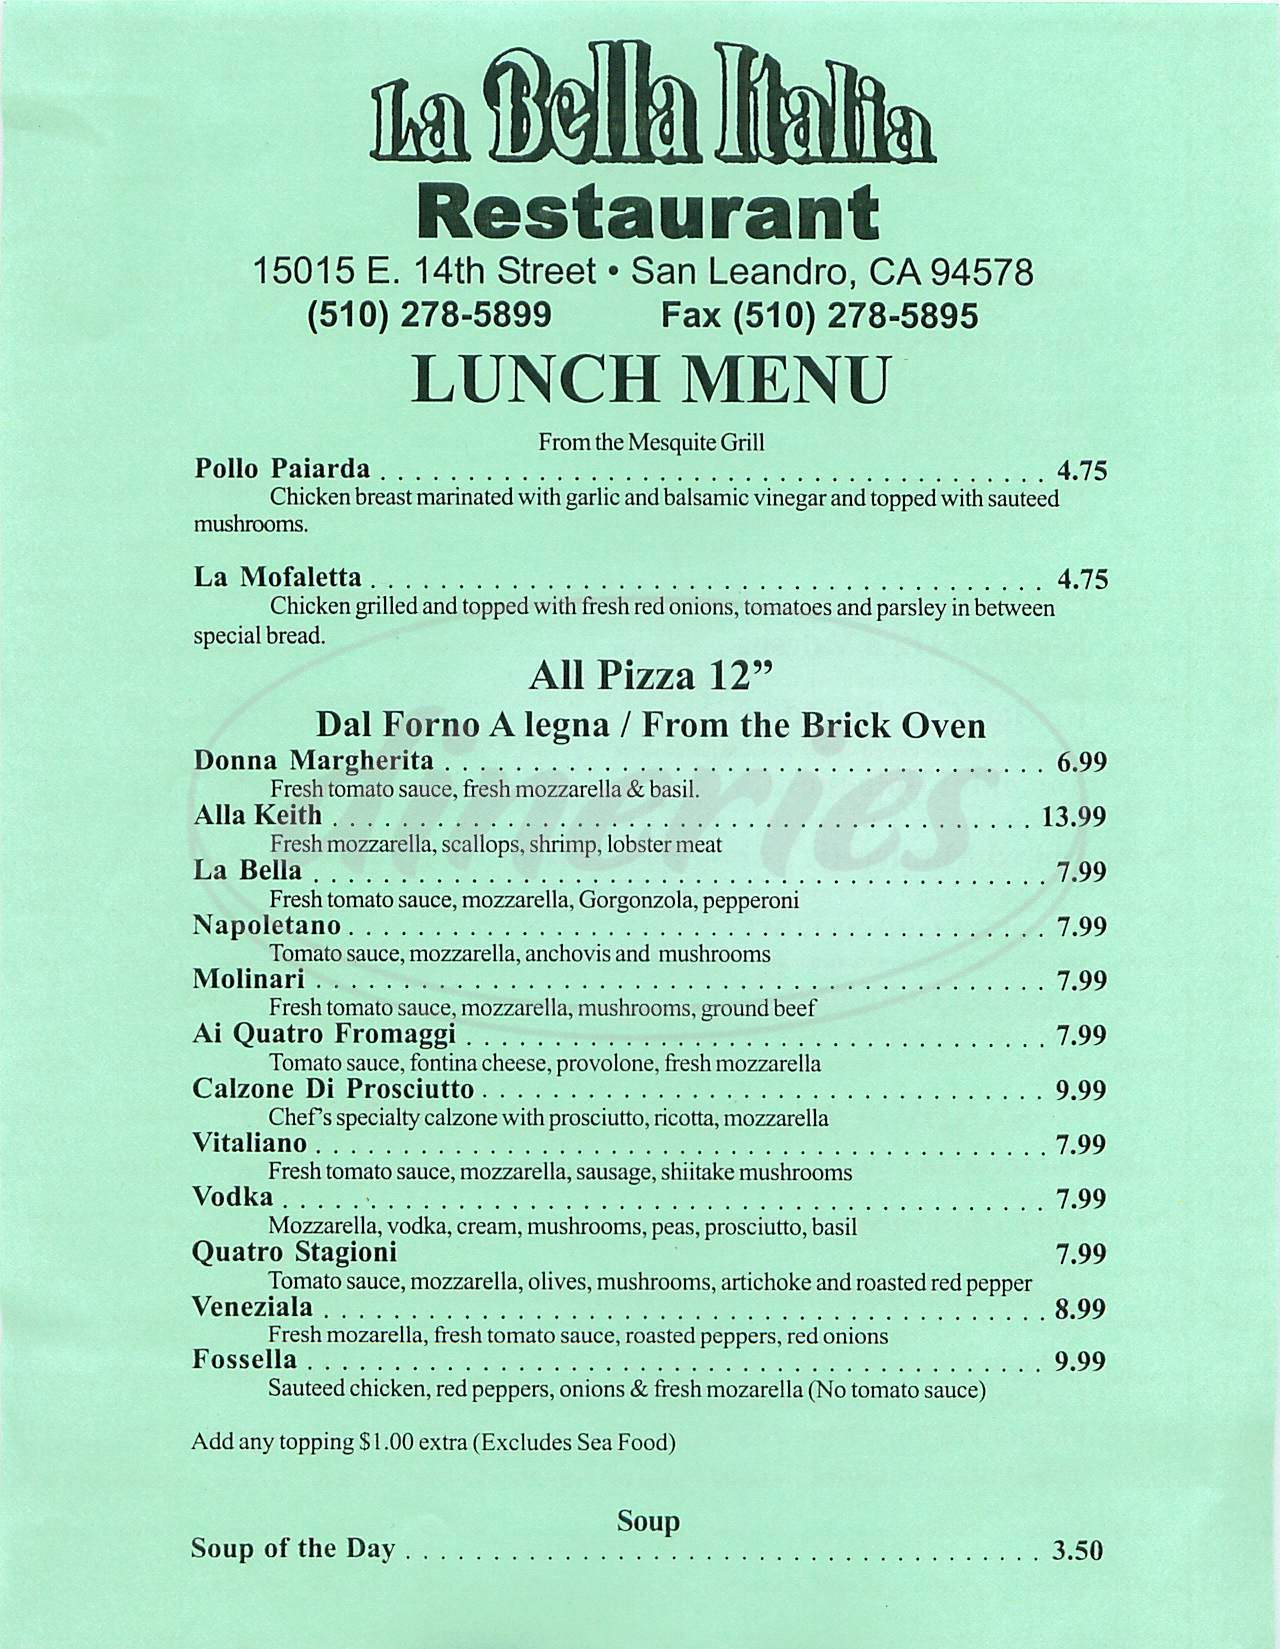 menu for La Bella Italia